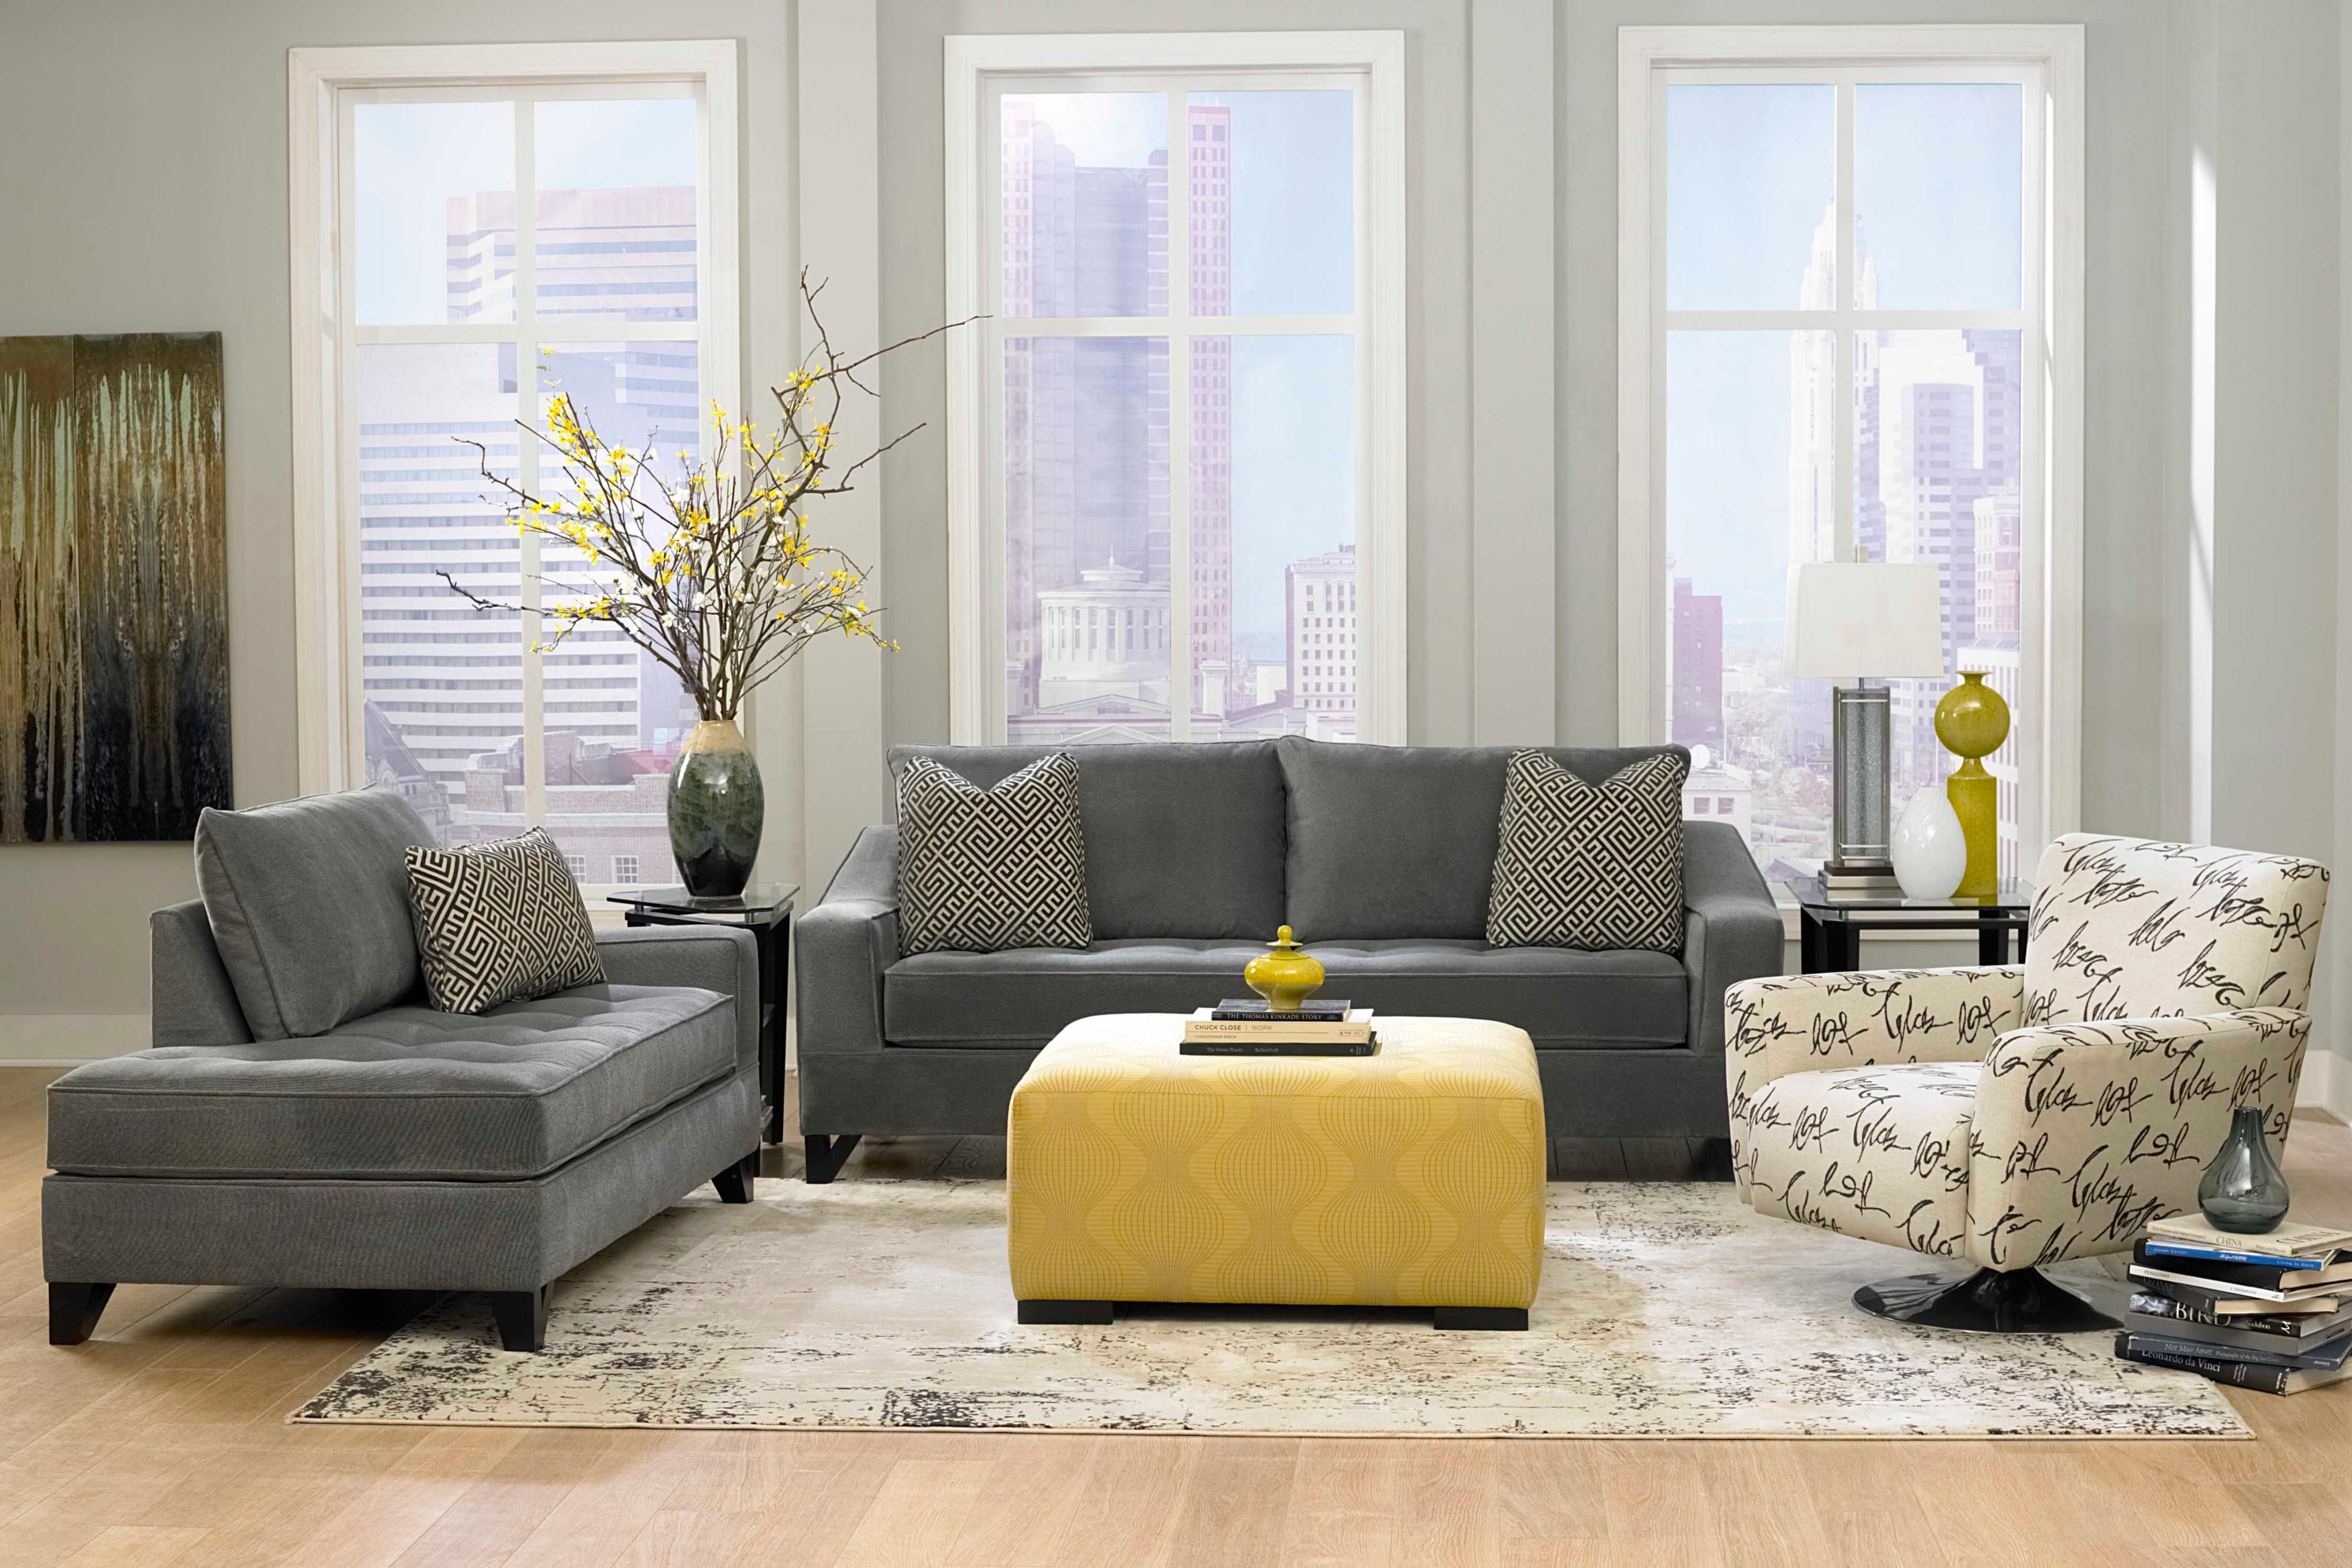 Window furniture in living room table ideas gray laminate wooden flooring paint color scheme decor grey sofa also image result for small  sectional and coffee rh za pinterest